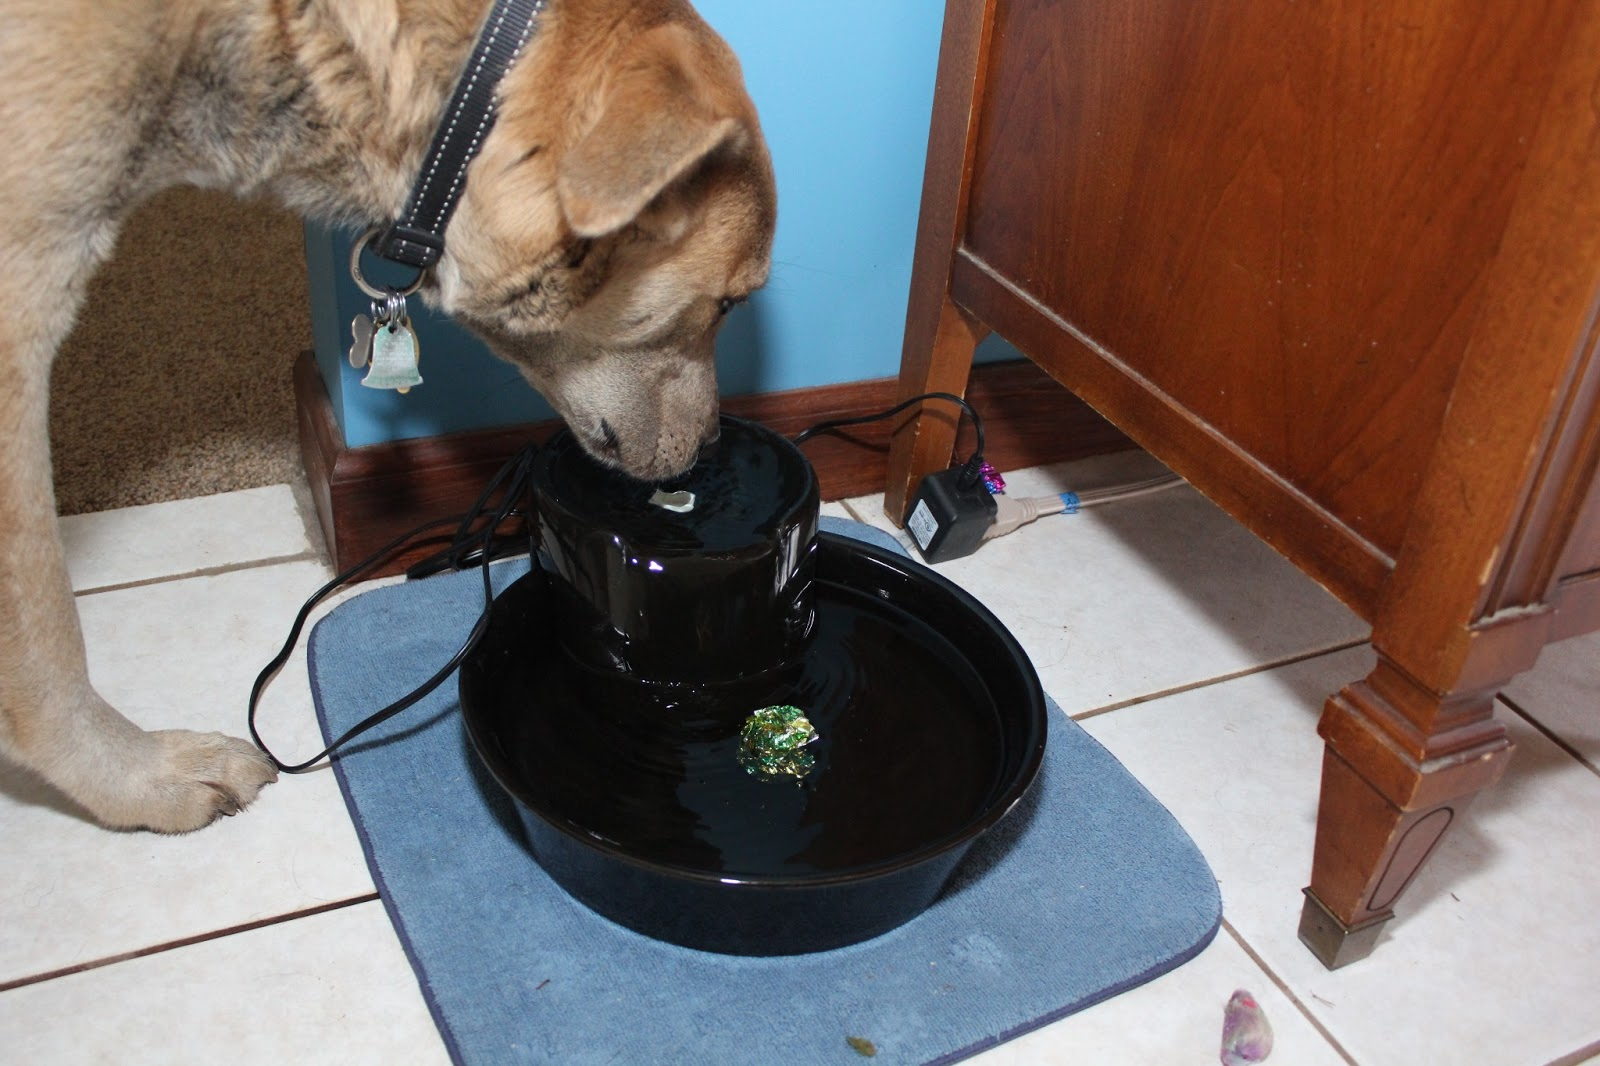 A dog finds a cat toy floating in his water bowl.